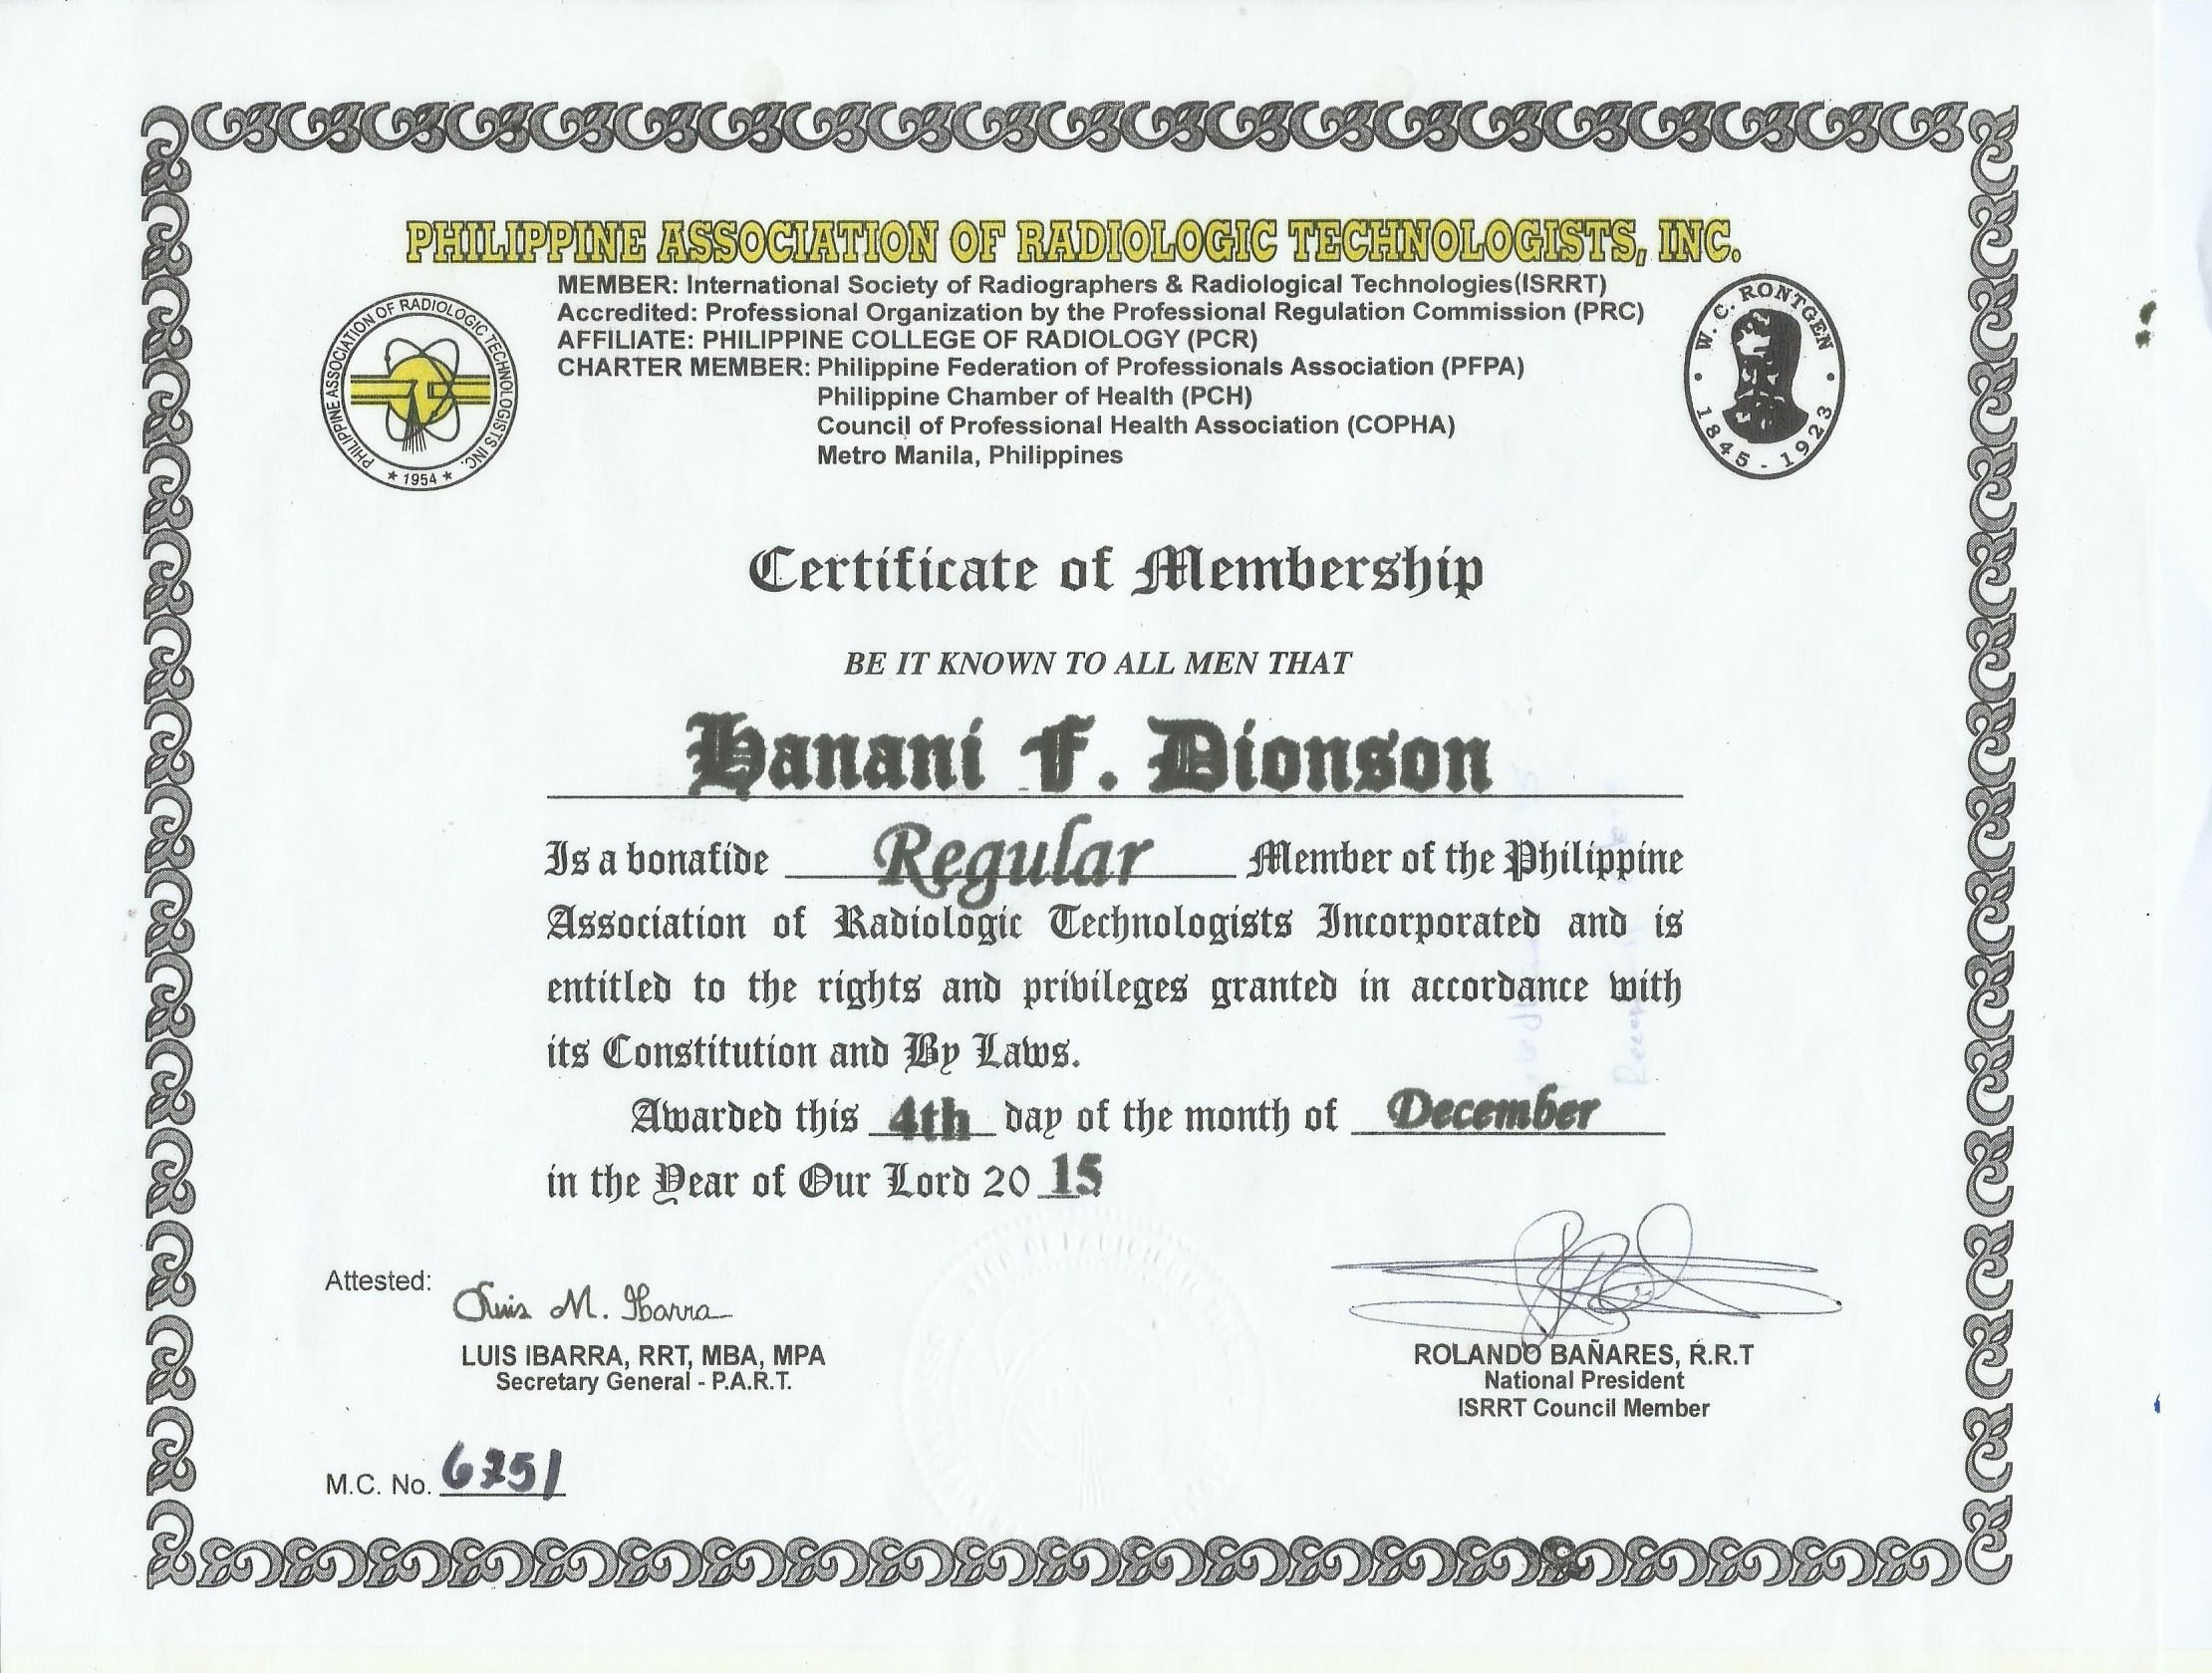 Hanani dionson bayt philippine association of radiologic technologist membership certificate 1betcityfo Image collections